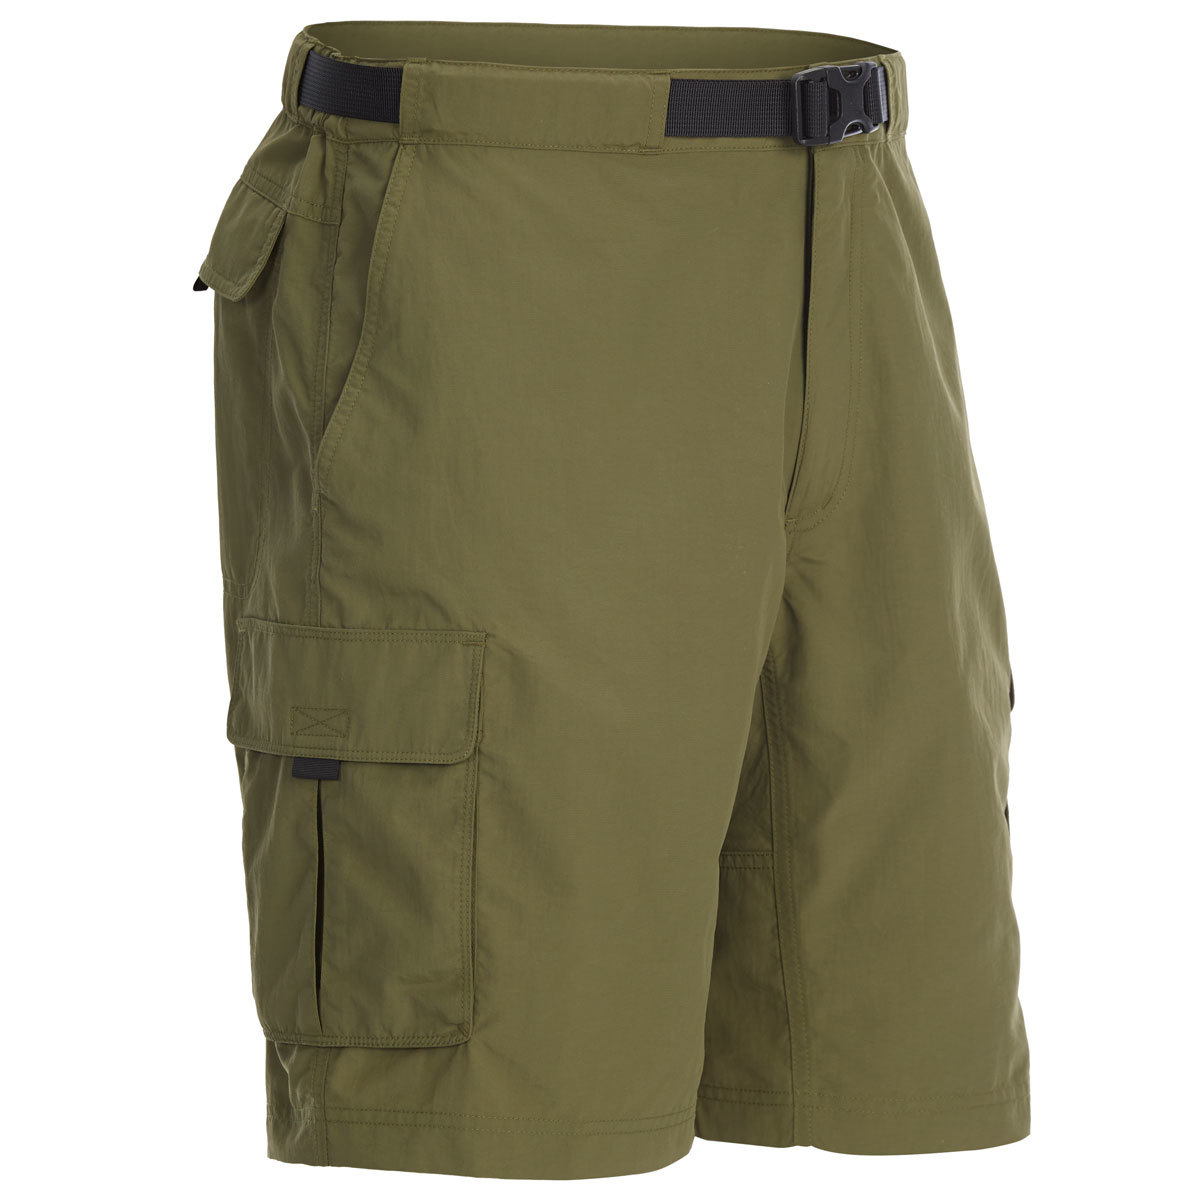 Ems Men's Camp Cargo Shorts - Green, 32